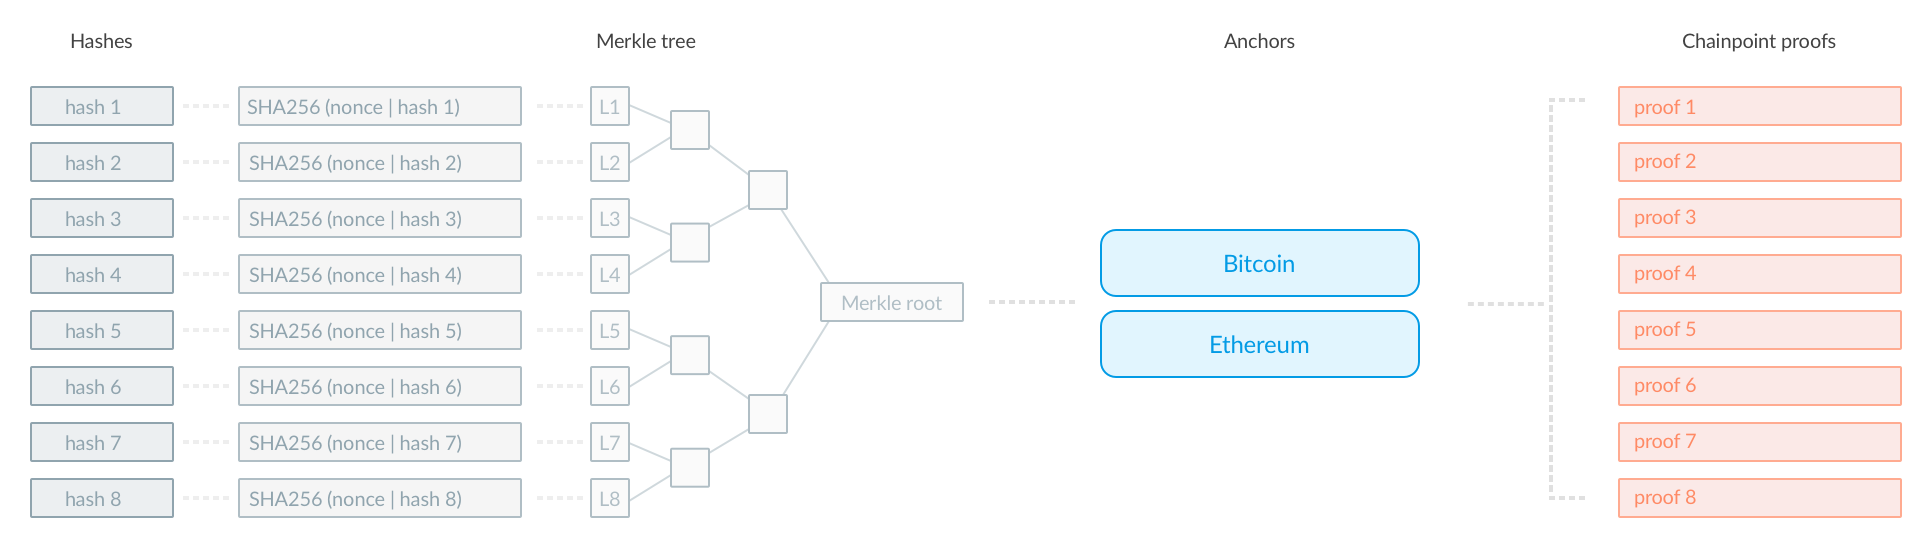 Chainpoint protocol using Merkle trees to scale the proofing solution (source https://chainpoint.org)